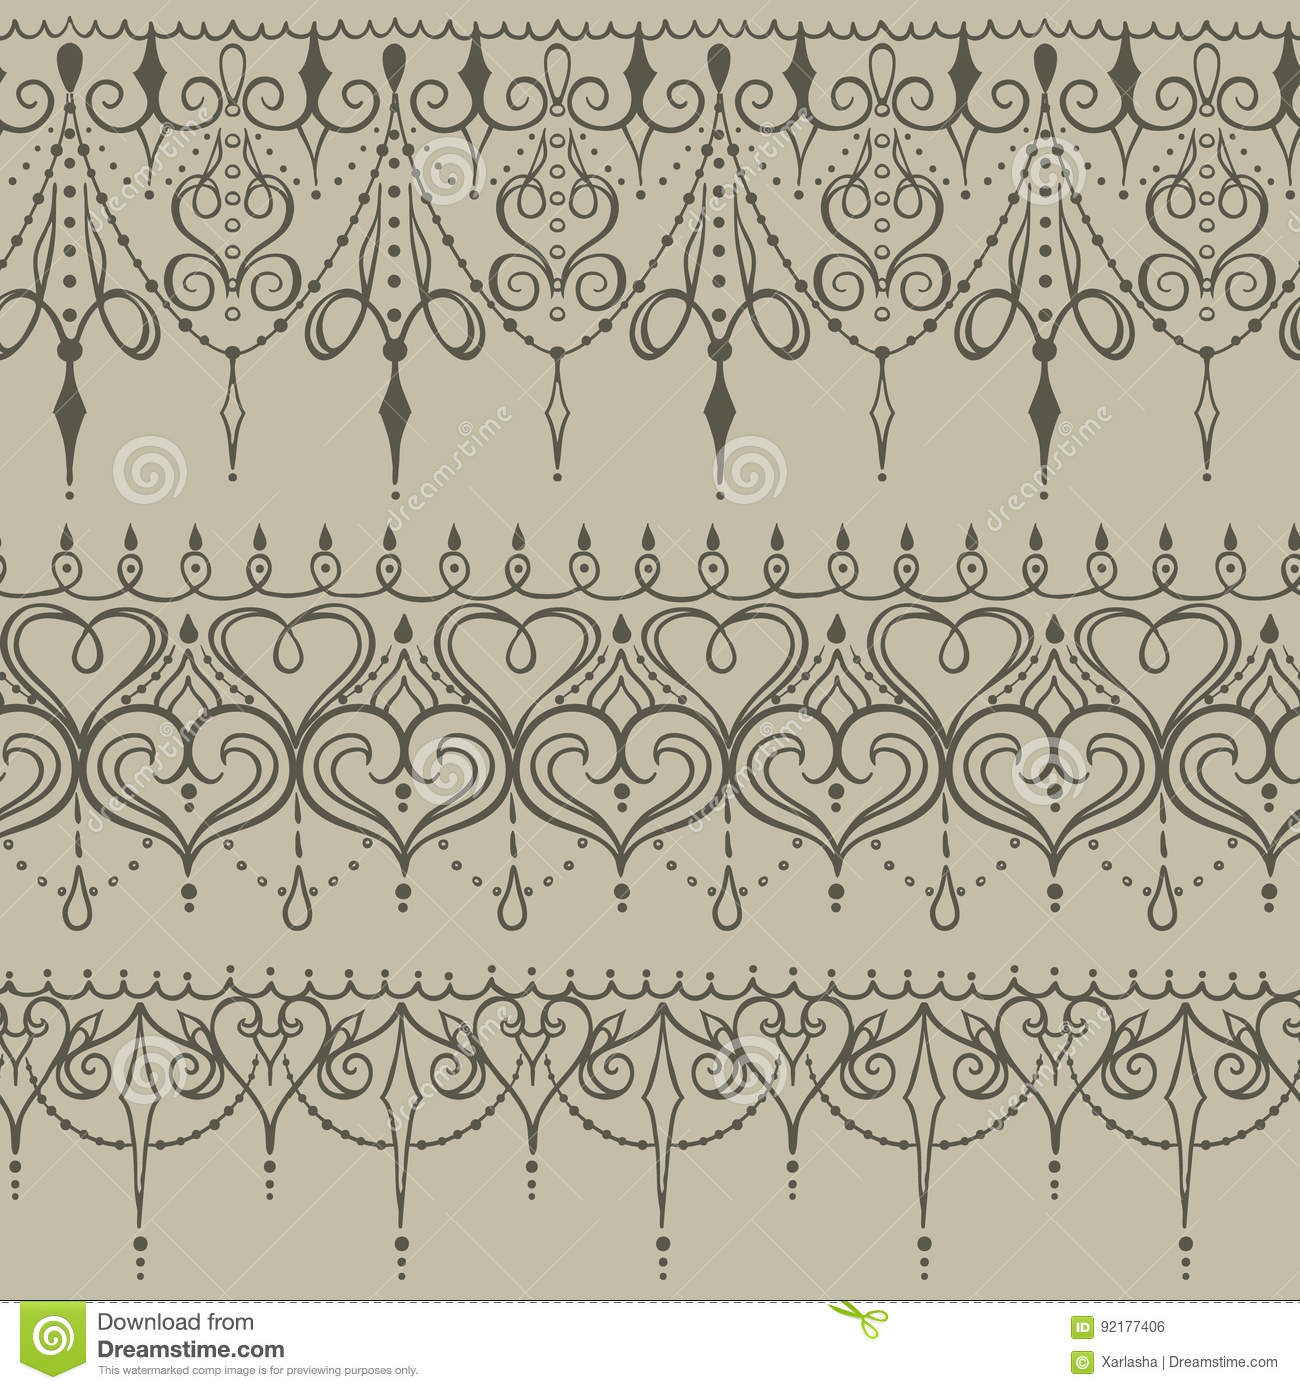 Sketch Of Endless Stripes In Henna Tattoo Style Stock Vector